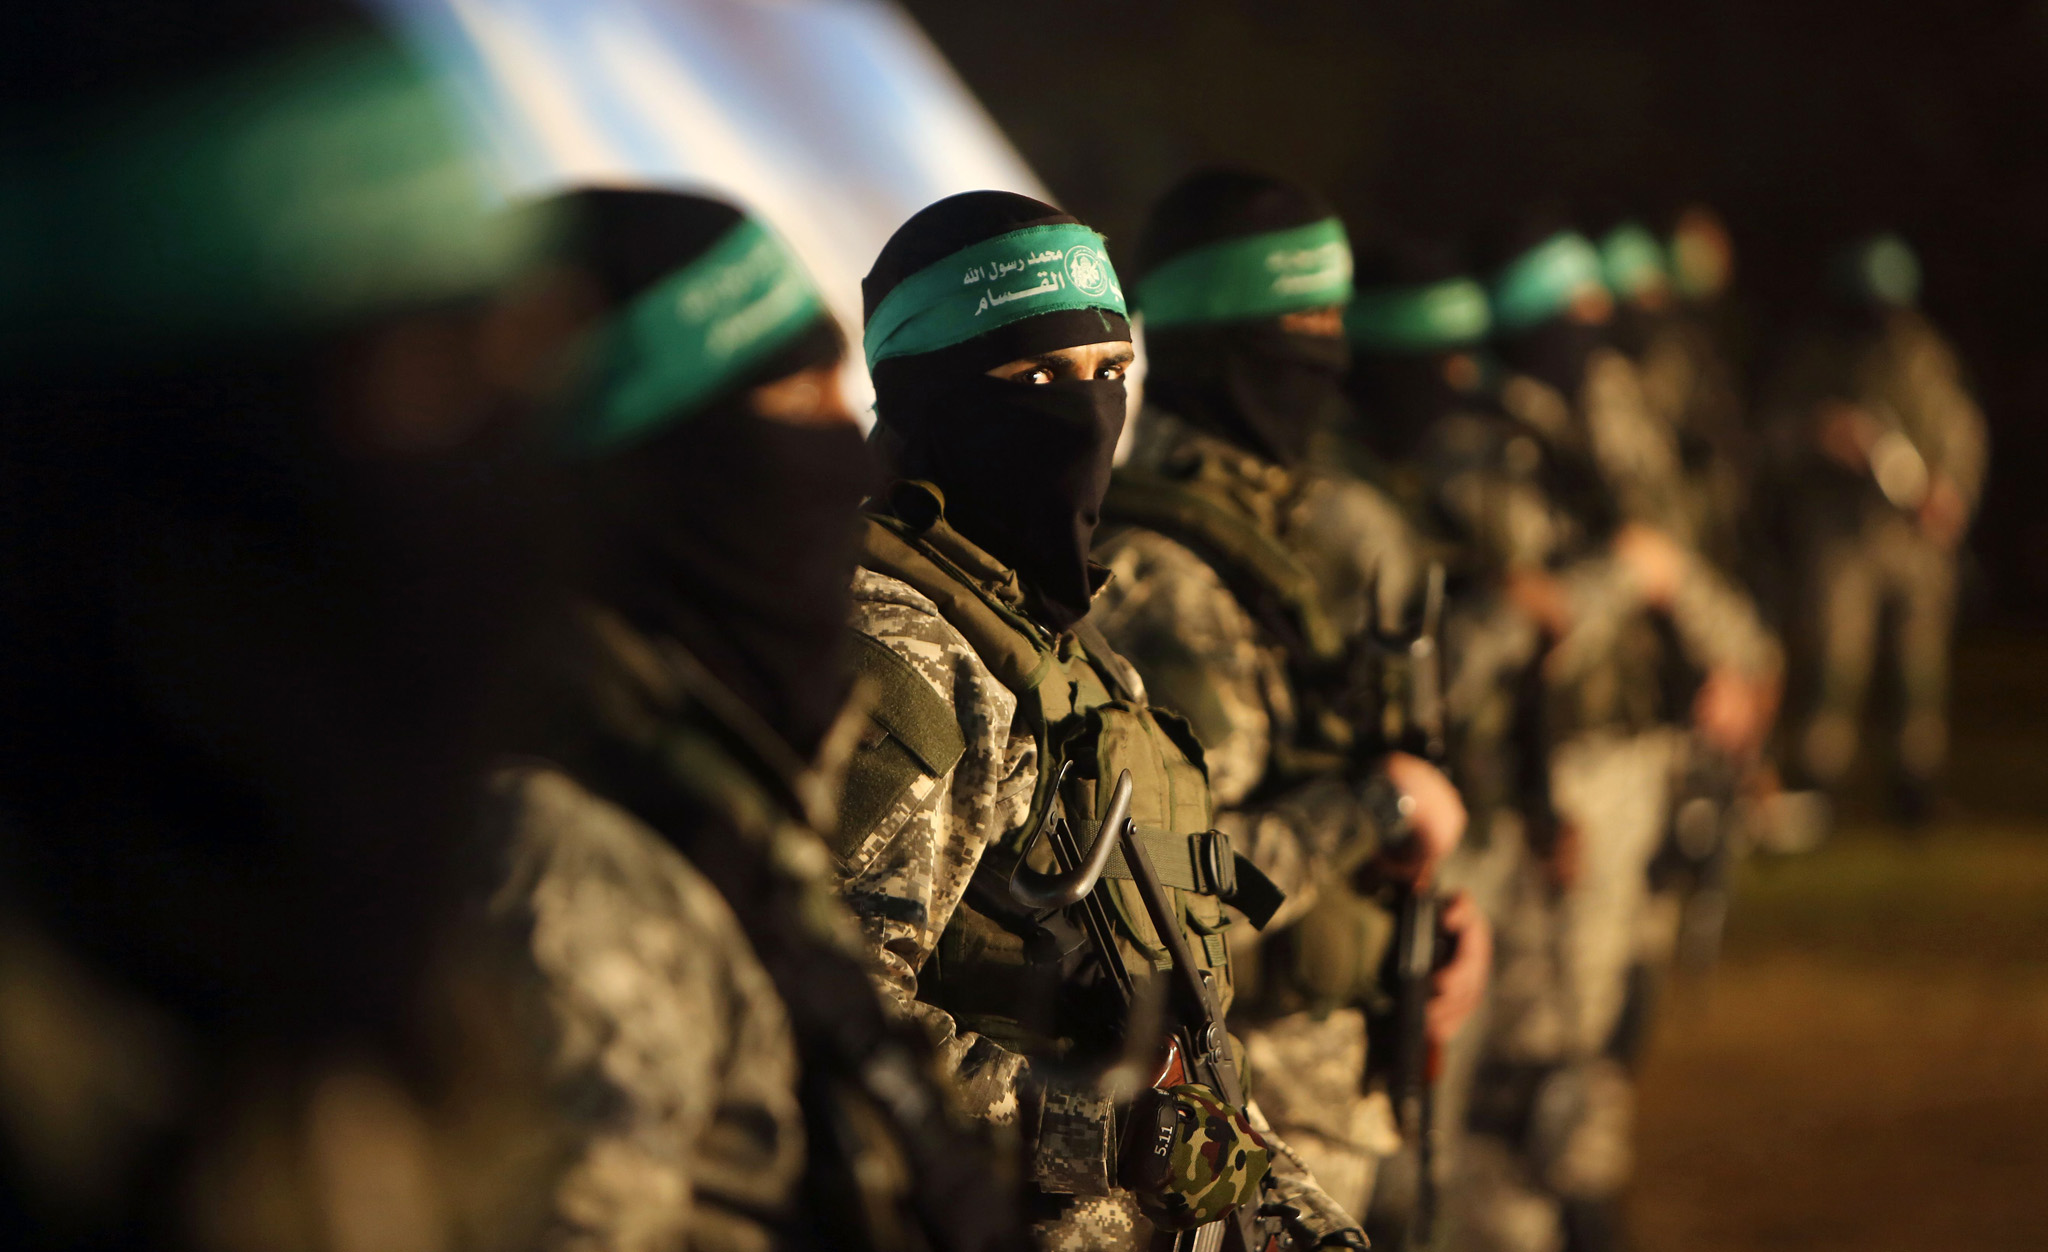 TOPSHOT - Palestinian members of the Ezz...TOPSHOT - Palestinian members of the Ezzedine al-Qassam Brigades, the armed wing of the Hamas movement, take part in a gathering on January 31, 2016 in Gaza city to pay tribute to their fellow militants who died after a tunnel collapsed in the Gaza Strip.  Seven Hamas militants were killed on January 28, 2016 after a tunnel built for fighting Israel collapsed in the Gaza Strip, highlighting concerns that yet another conflict could eventually erupt in the Palestinian enclave.  / AFP / MAHMUD HAMSMAHMUD HAMS/AFP/Getty Images